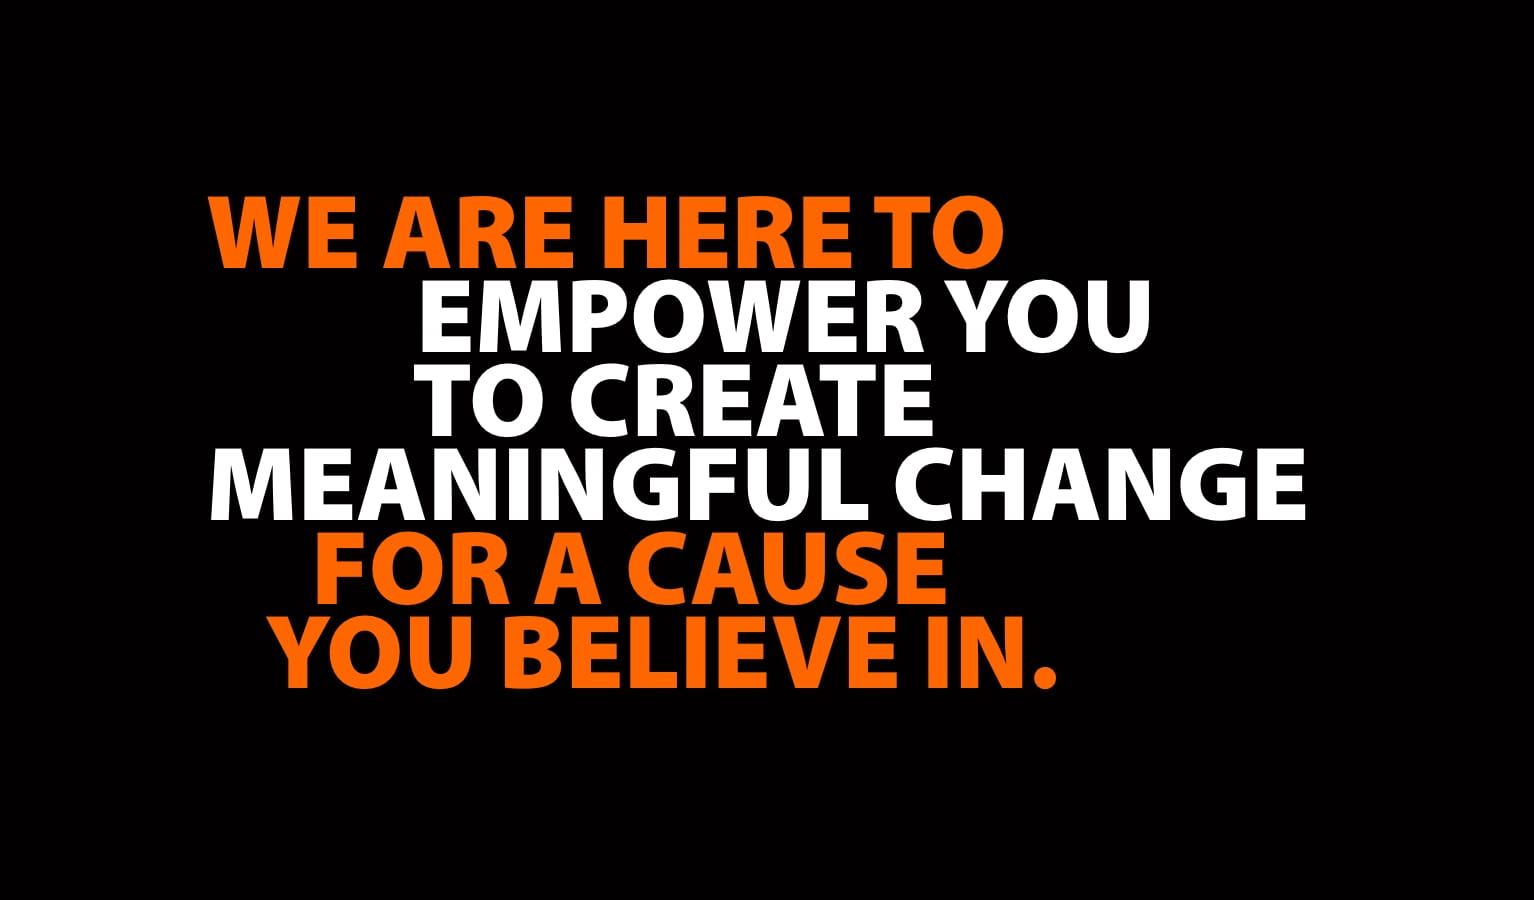 We are here to empower Australians